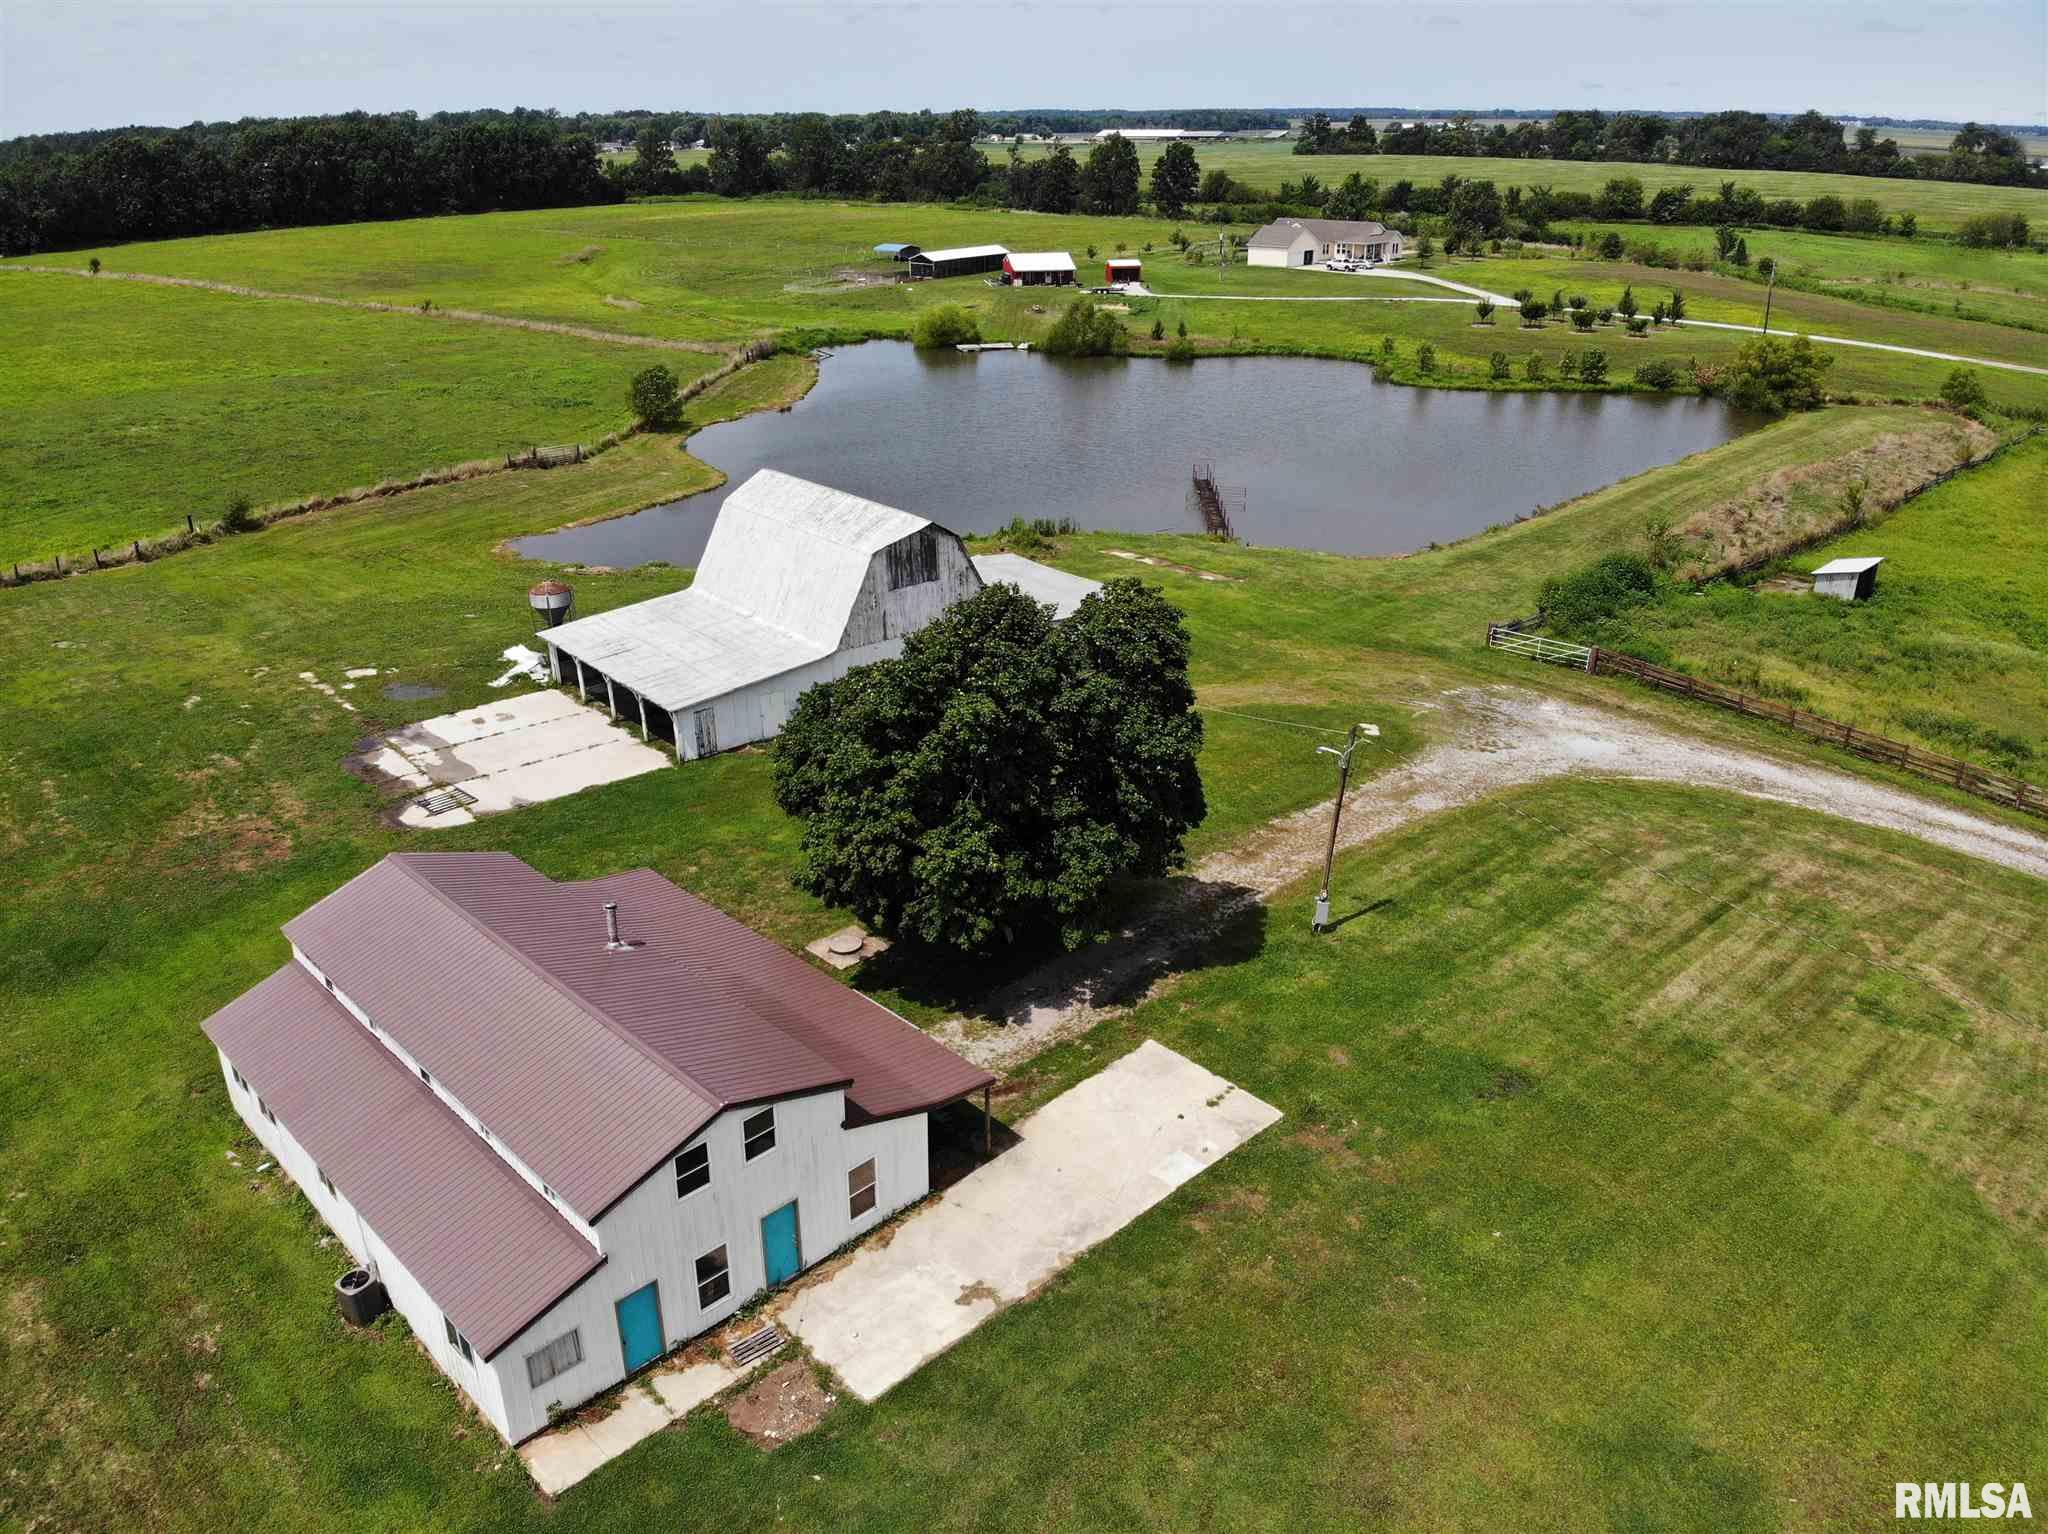 Looking for a few acres on the outside of town?  If you need a place immediately ready to accommodate farm animals this is it!  5 acres m/l, a story 1/2 pole building home with 3600 floor area, 1689 upstairs (2 bedrooms upstairs, 1 bedroom down).  This home has a new high efficiency furnace, new central a/c, new wiring and you can set this home up however you would like!  There is city water and propane gas.  The large wooden barn is unique as well!  The 36X24 barn has many wooden stalls, a large covered lean to, large hay storage area, lighting and new electric to it too.  To top it off, there is a large deep pond.  The property is fenced in the back.  There is also a portion fenced on the north side and it has its own lean to.  This property sets just outside city limits, so it is country living , but close to town.  Highly sought after property on N. Charleston Rd.